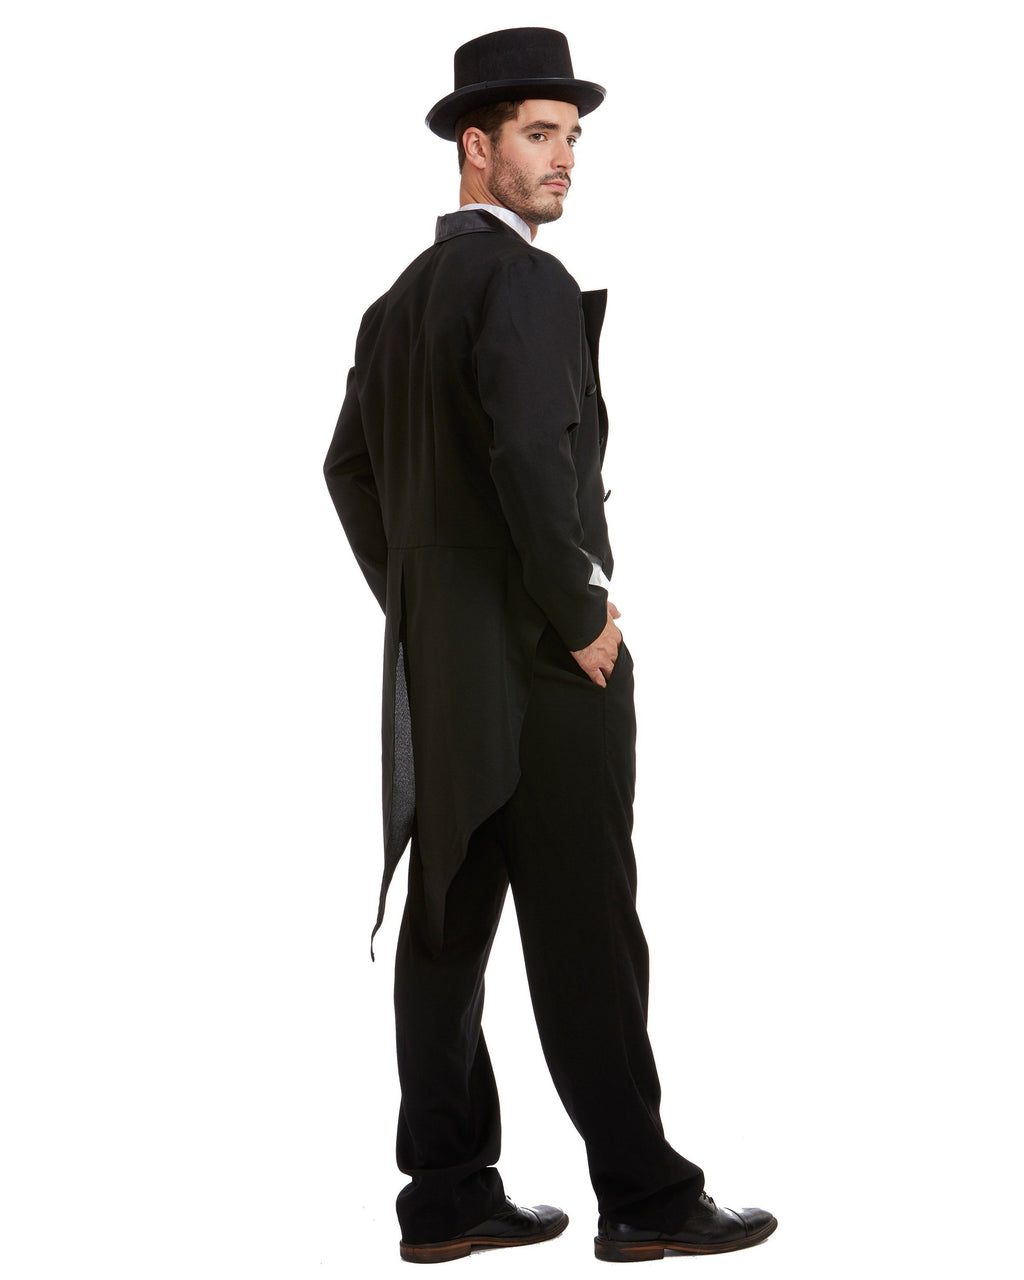 Gatsby Men's Costume Dreamgirl Costume